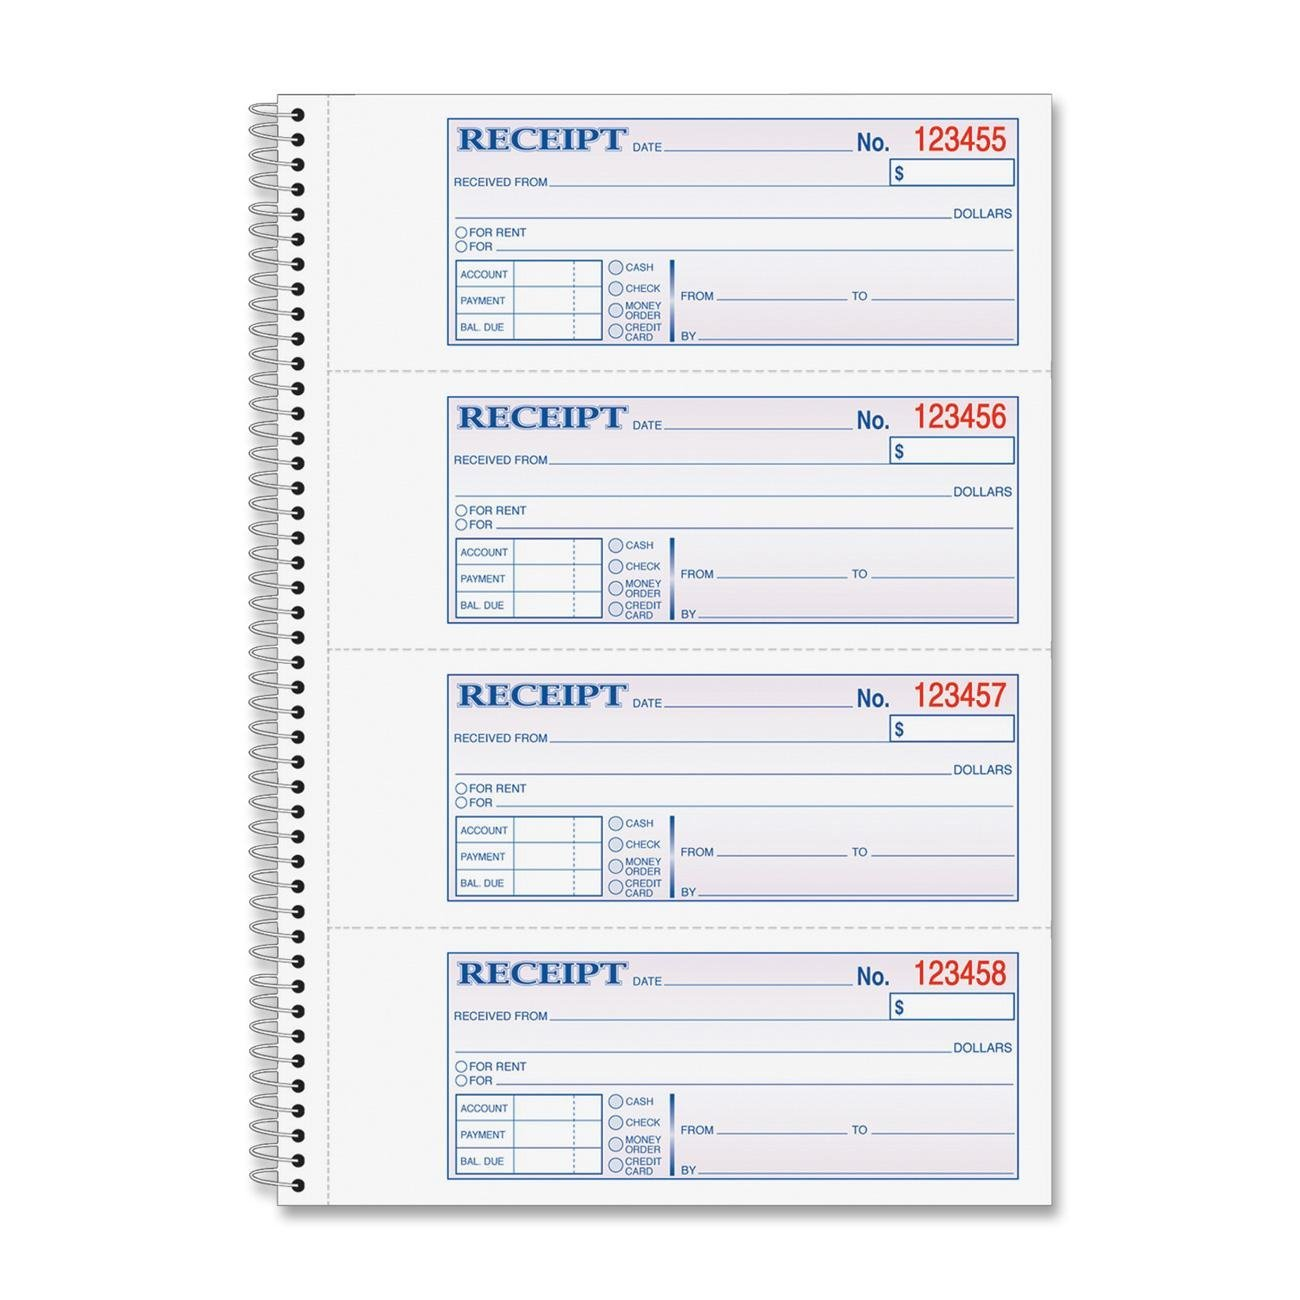 Adams Business Forms Products - Money/Rent Receipt Bk, Spiral, 2-Part, 7-5/8quot;x11quot;, 200/BK - Sold as 1 EA - Money/rent receipt book lets you record rent payments and other types of payments. Each form indicates a place to record date, payers name, purpose of payment, payment amount, time